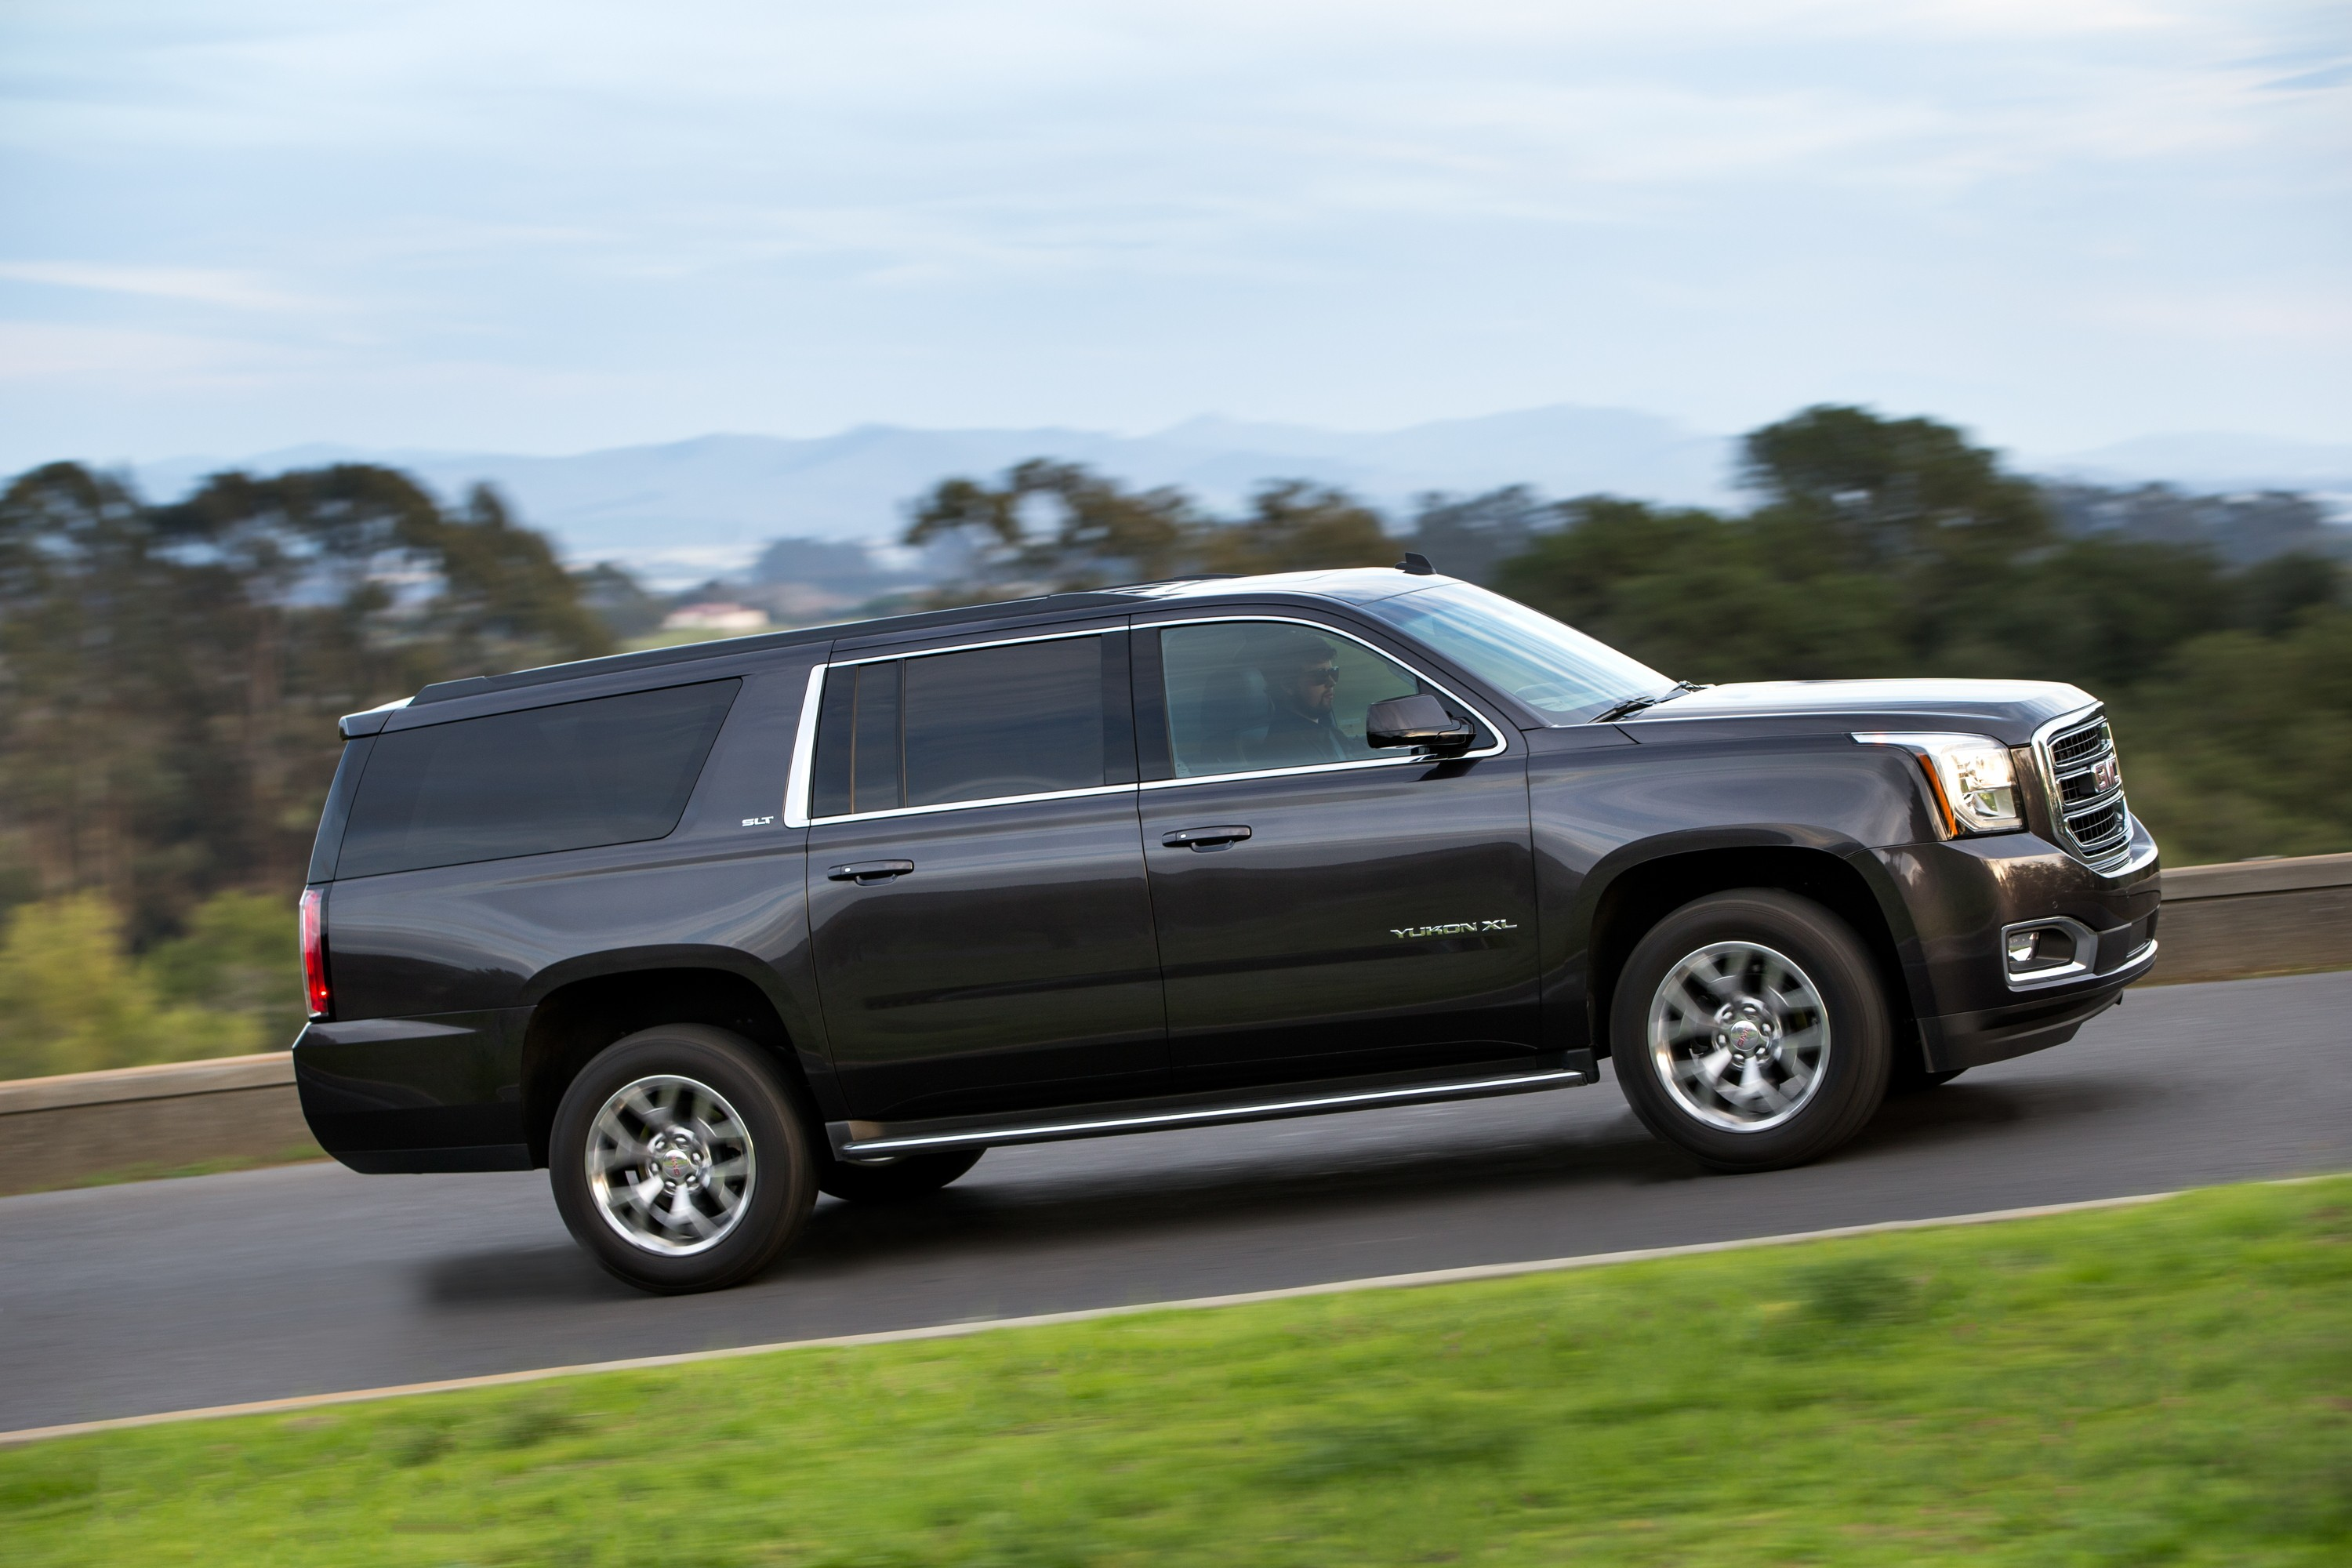 denali gmc yukon media vehicles united pages photos detail pressroom en galleries content us images states